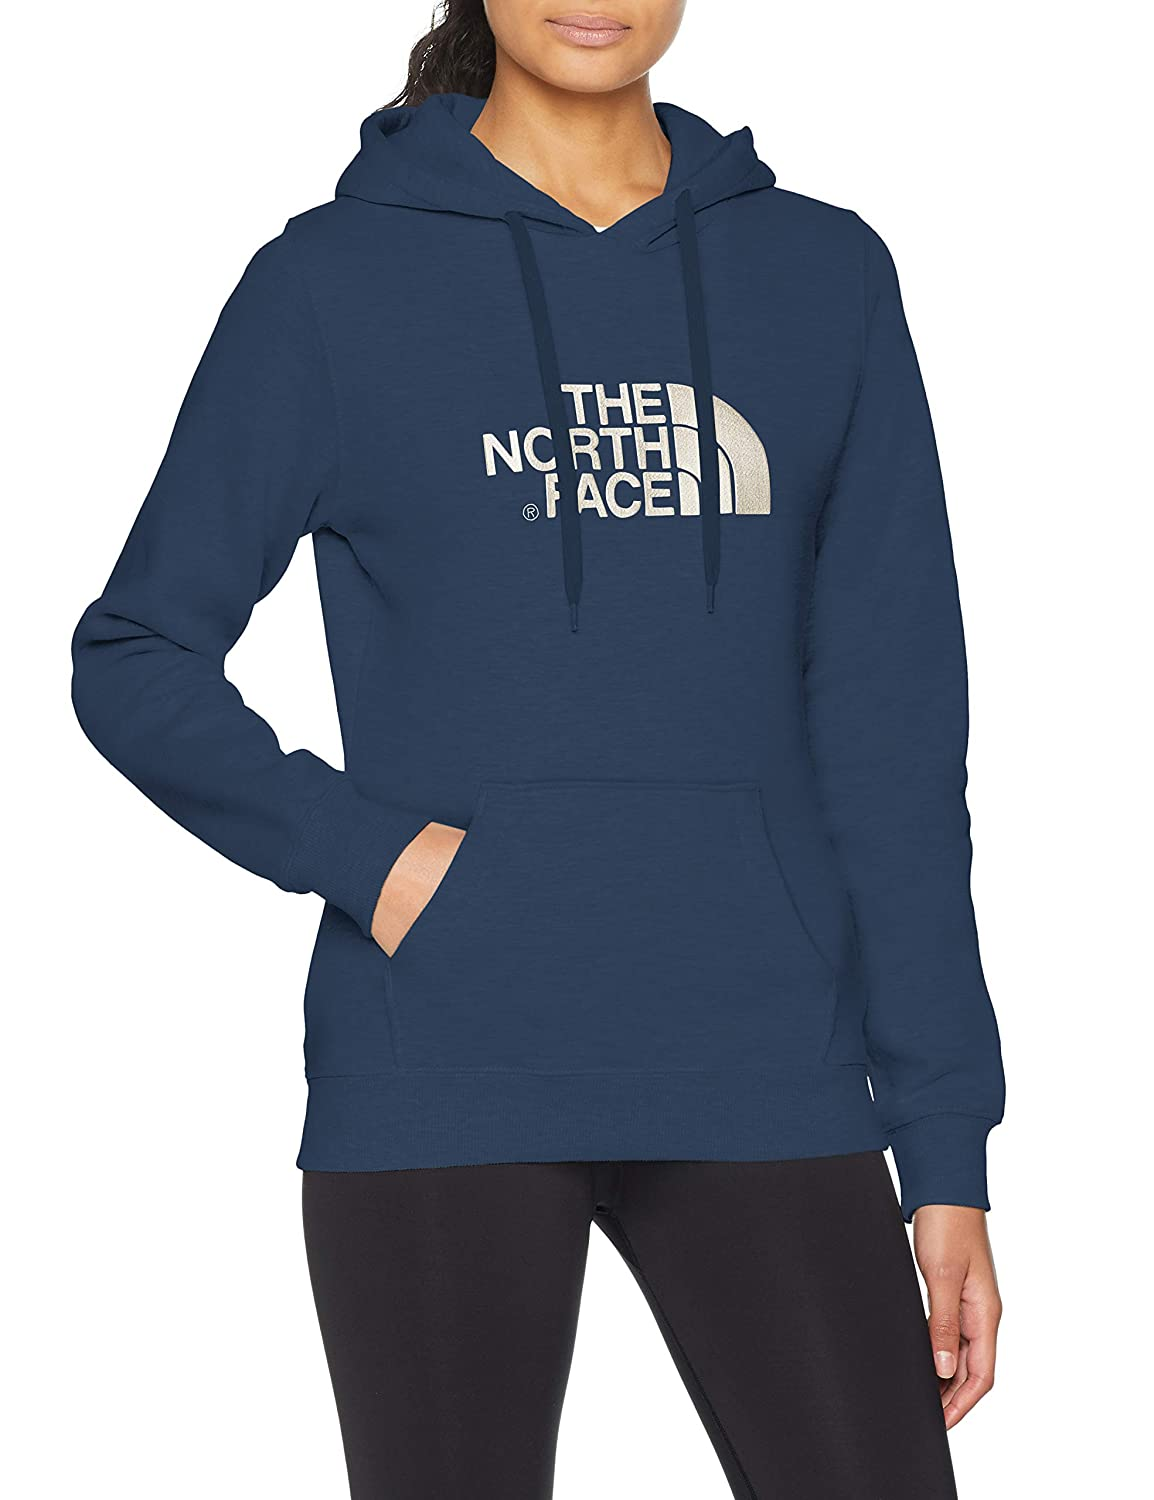 975103b15 THE NORTH FACE Women's Drew Peak Hoodie